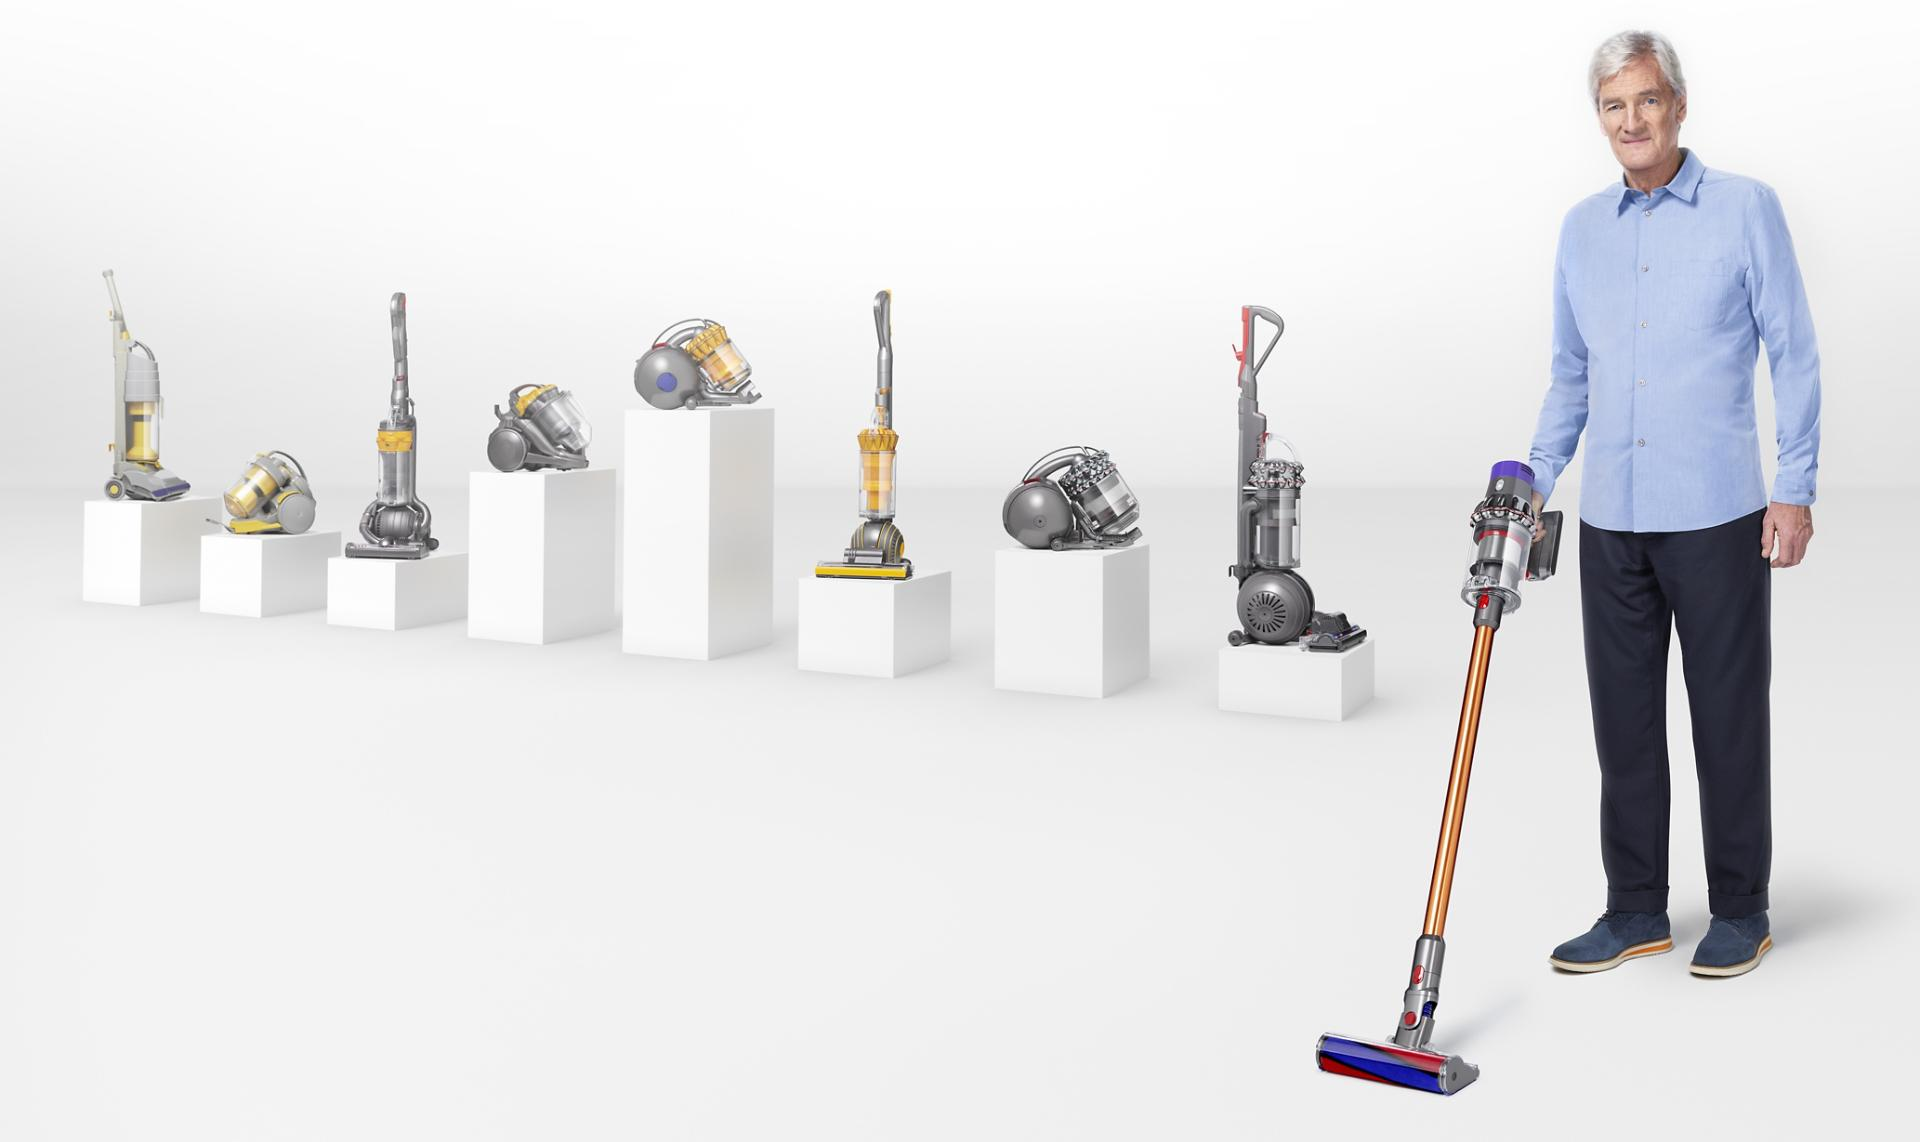 James Dyson with Dyson vacuums from the last 25 years